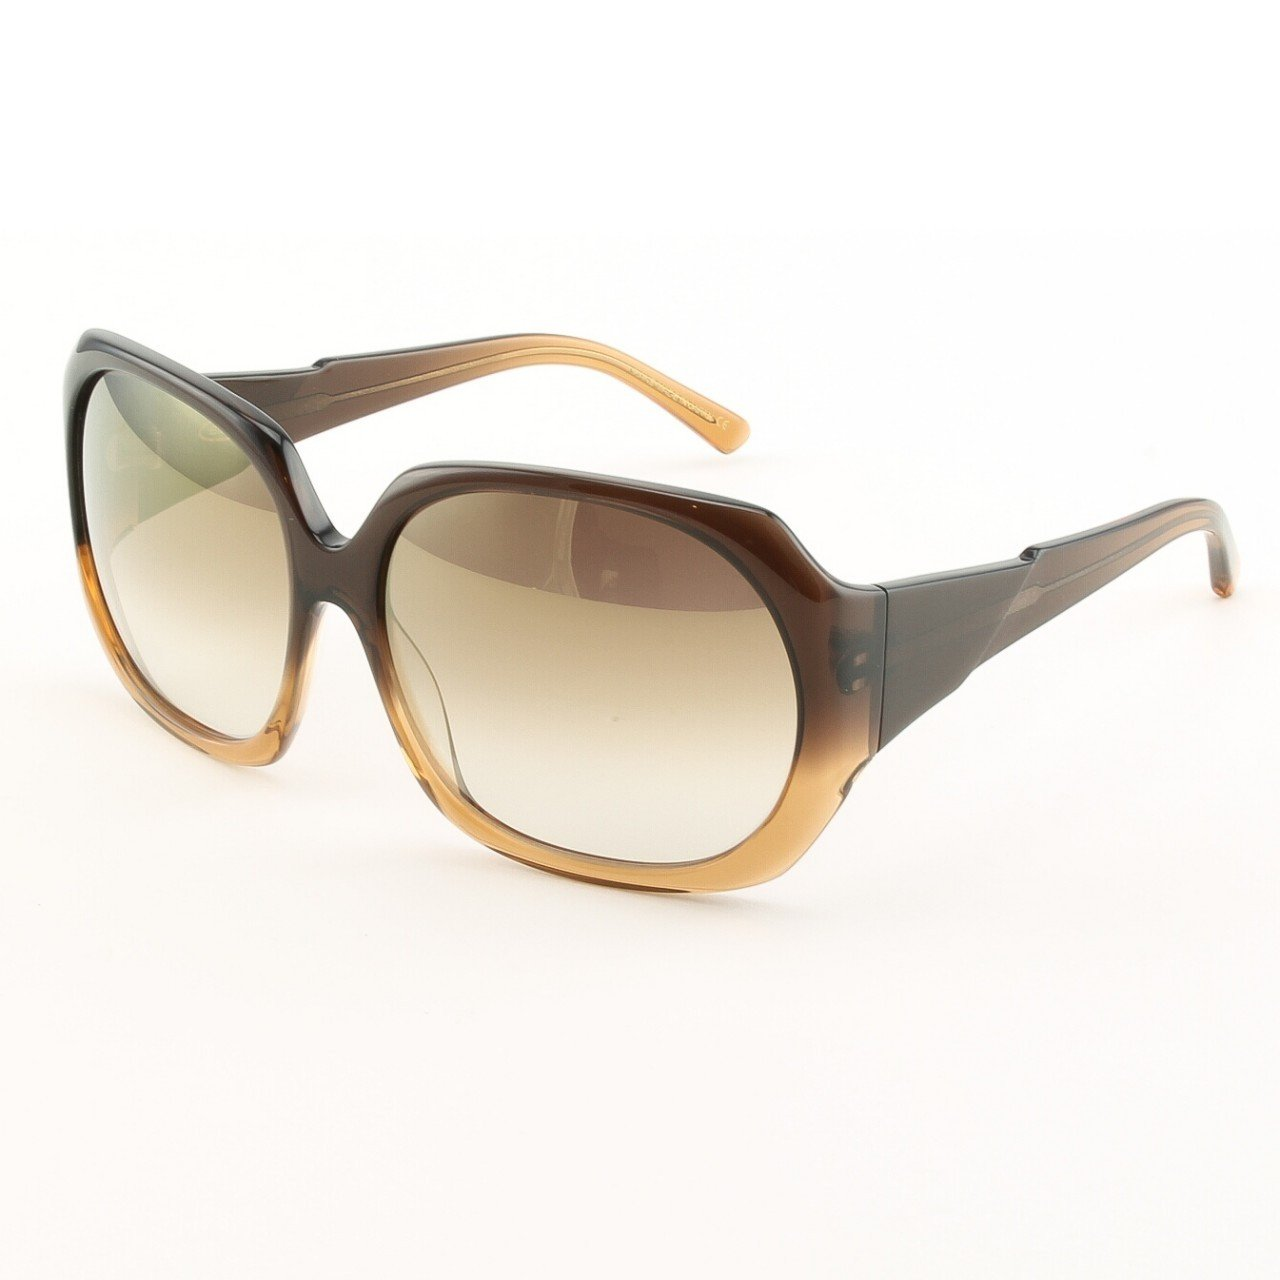 Blinde Bang On Women's Sunglasses Col. Root Beer Crystal Fade with Brown Lenses